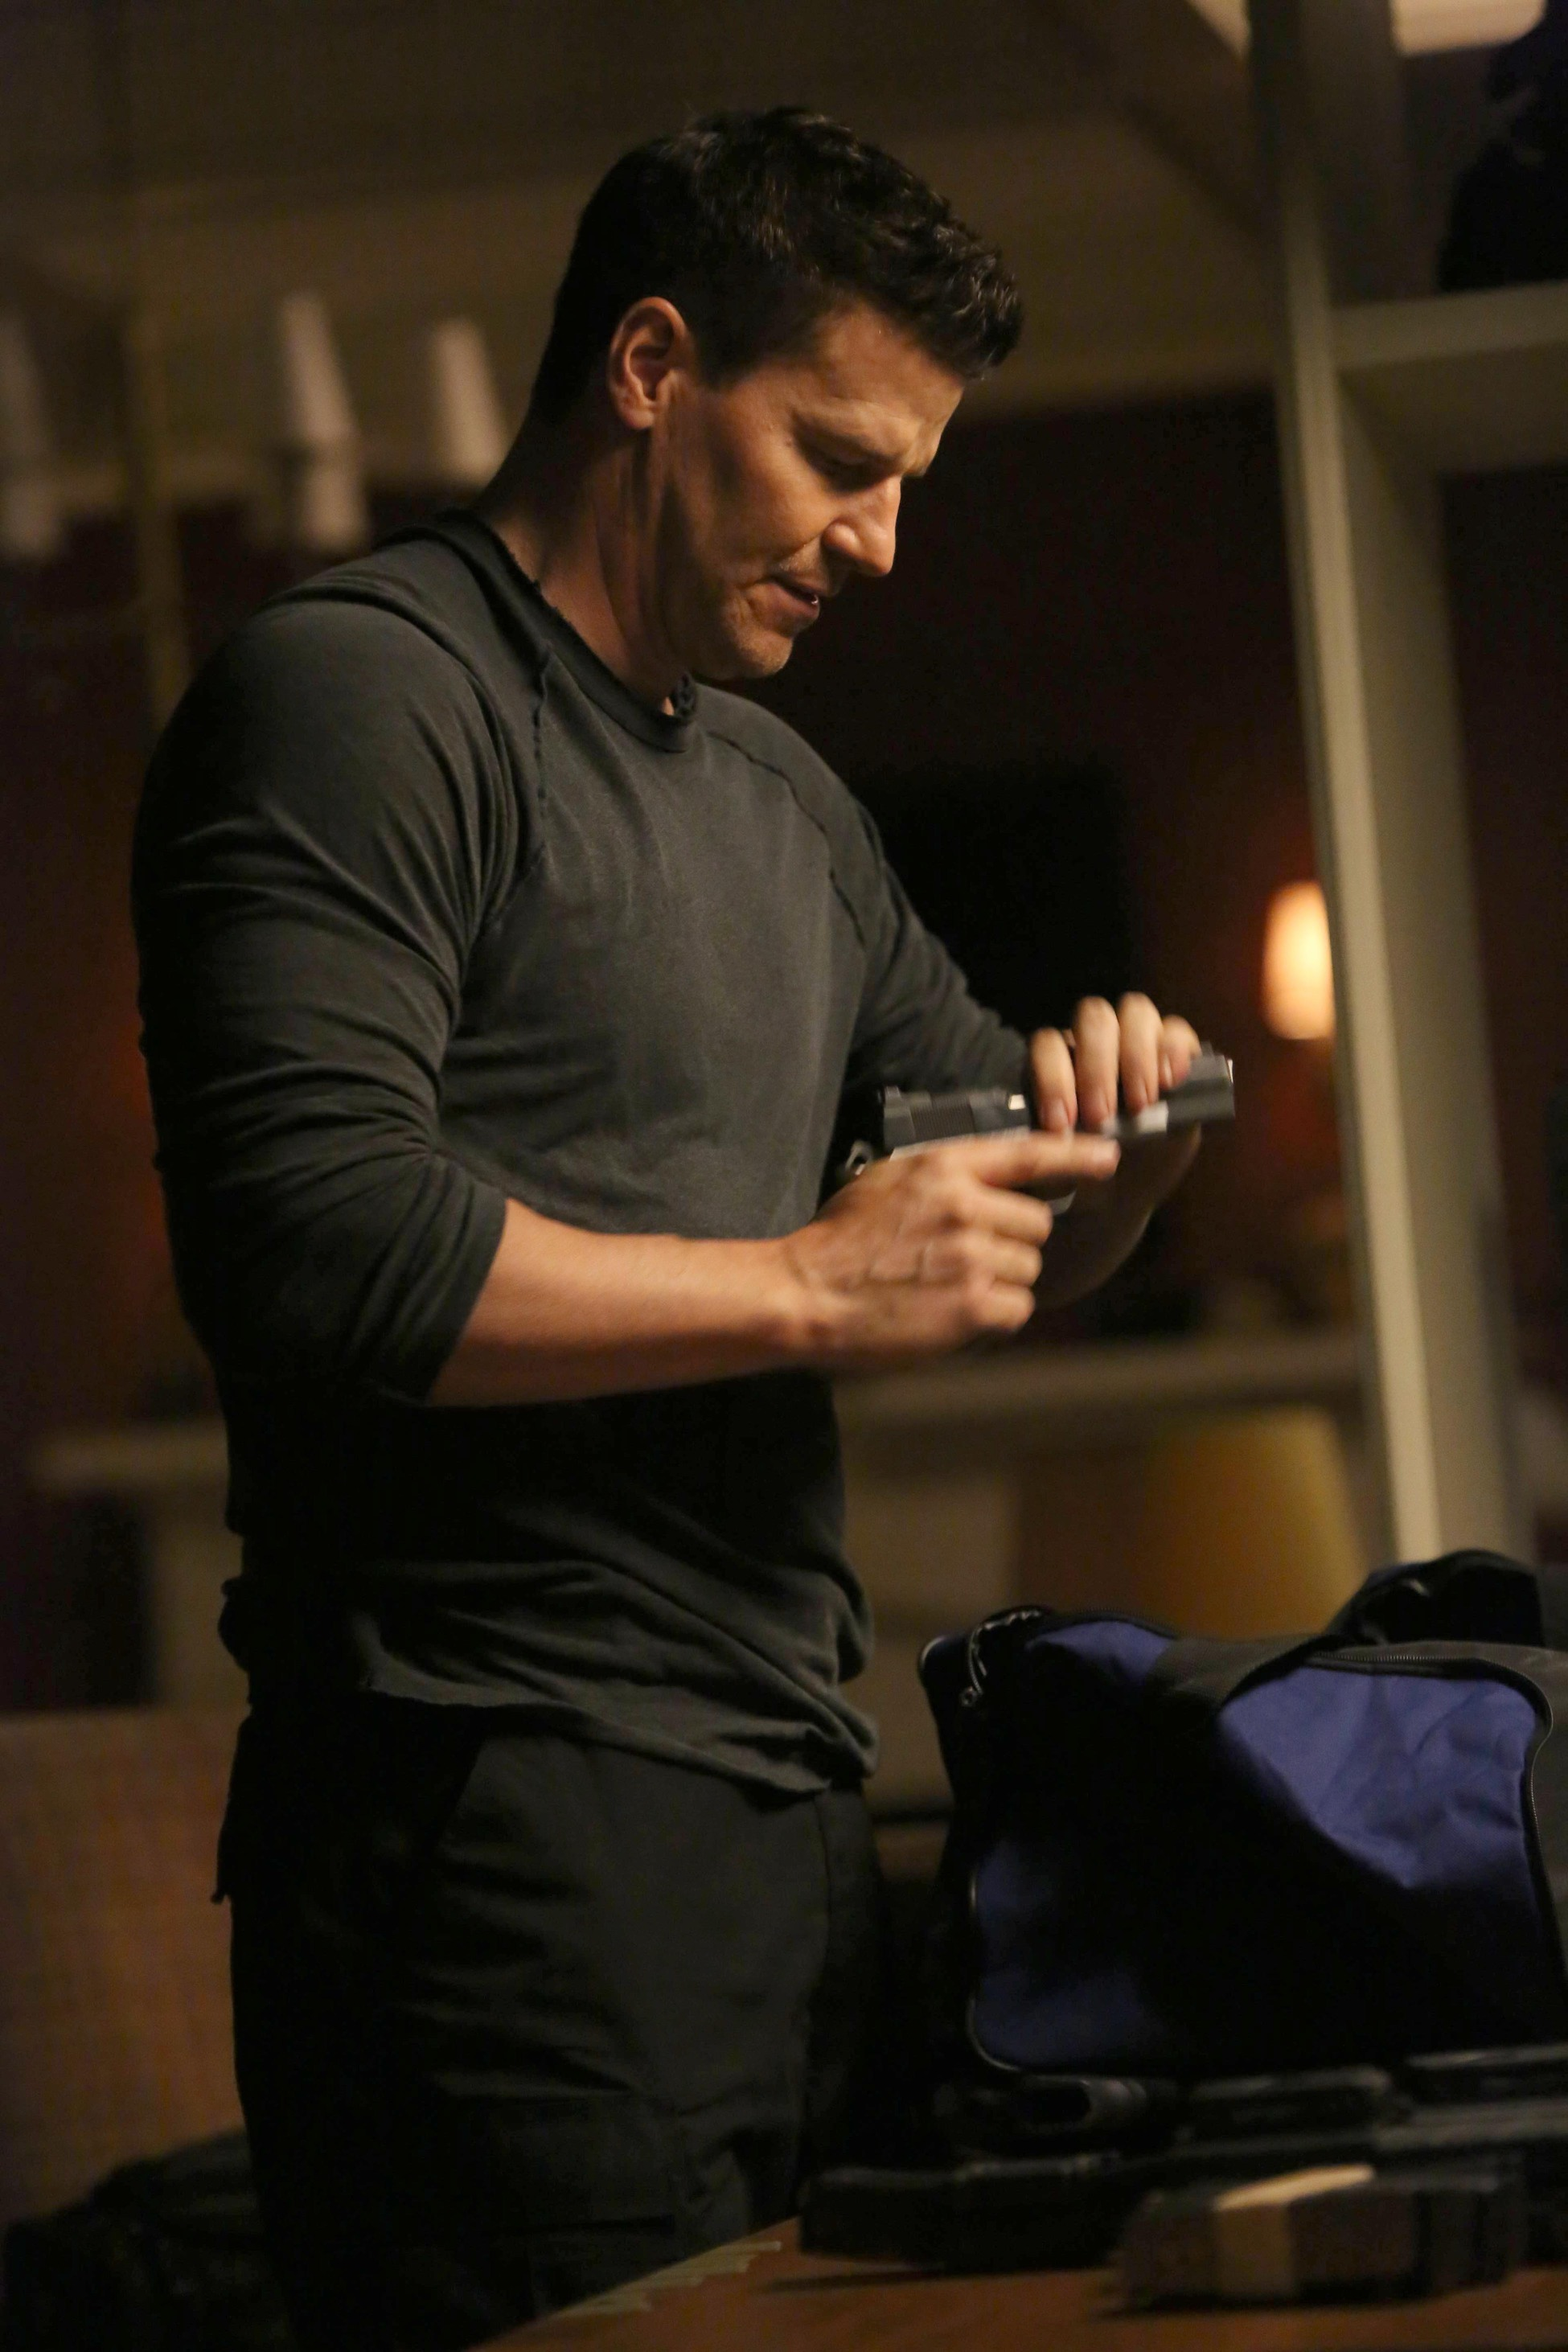 david boreanaz bones season 9 - photo #29